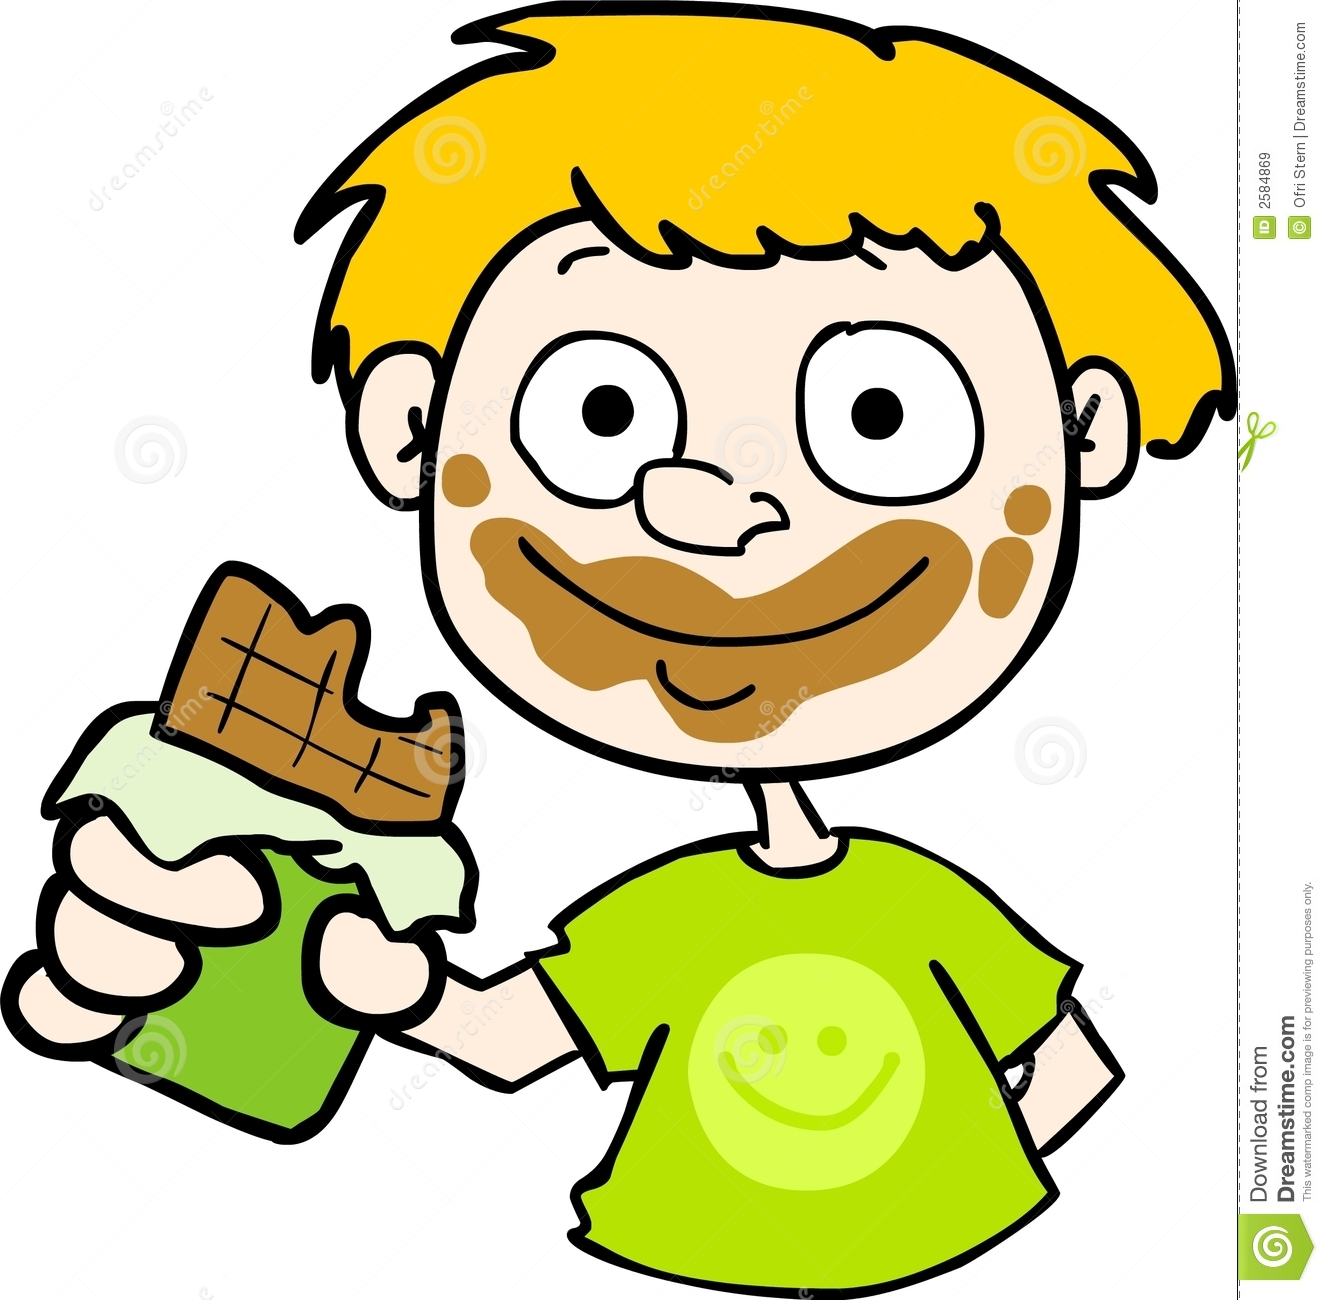 Chocolate clipart kid. Snack pencil and in